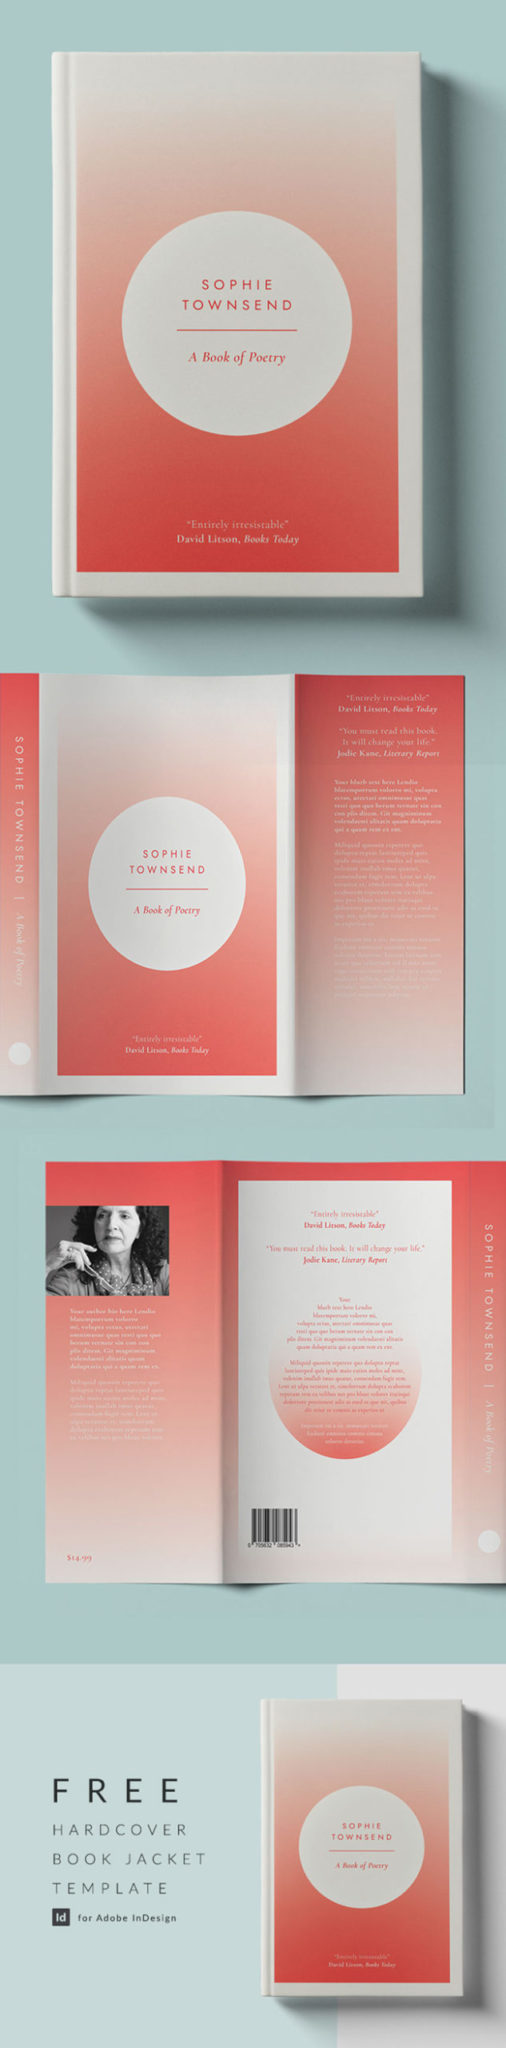 free book jacket template indesign free indesign dust jacket book hardcover hardback US trade